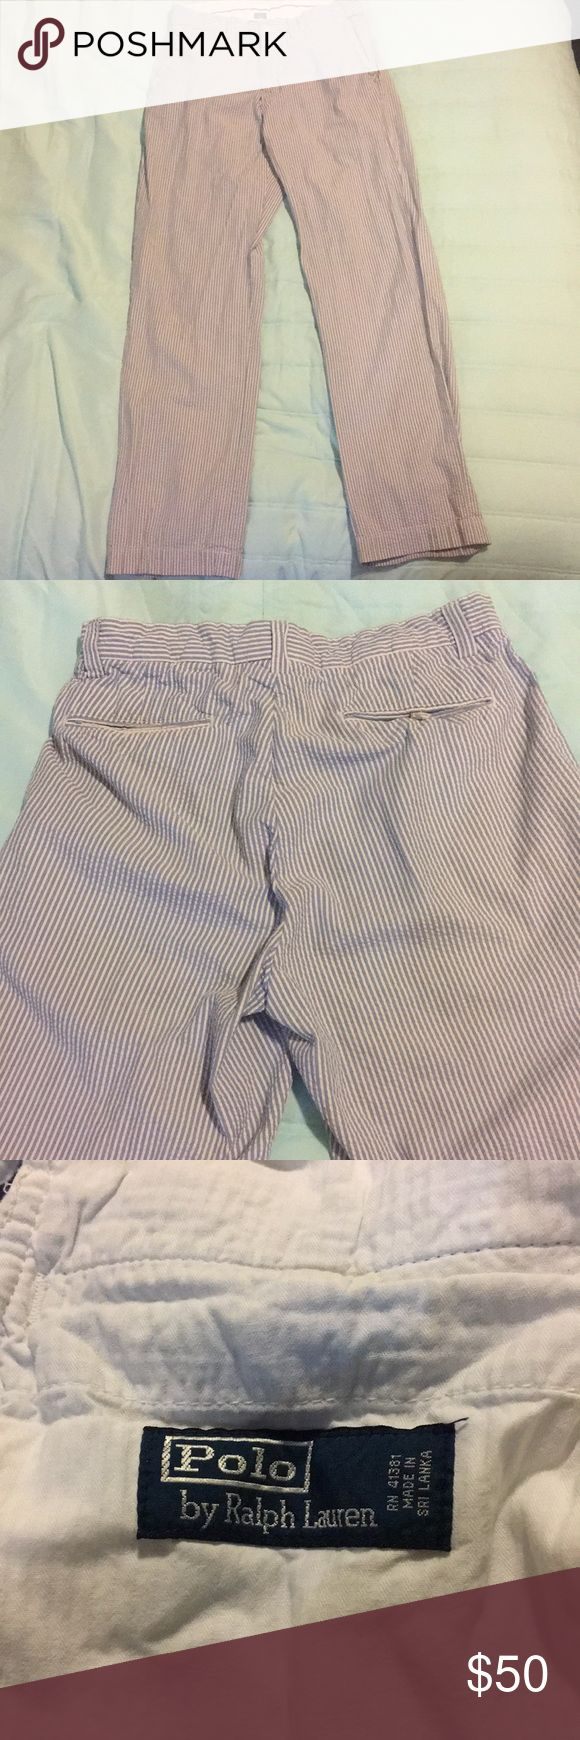 Ralph Lauren Seersucker Pants Great condition!!!  Blue and white striped seersucker Pants Brand Ralph Lauren Size 32x32 Two front pockets with small pocket Two back pockets Polo by Ralph Lauren Pants